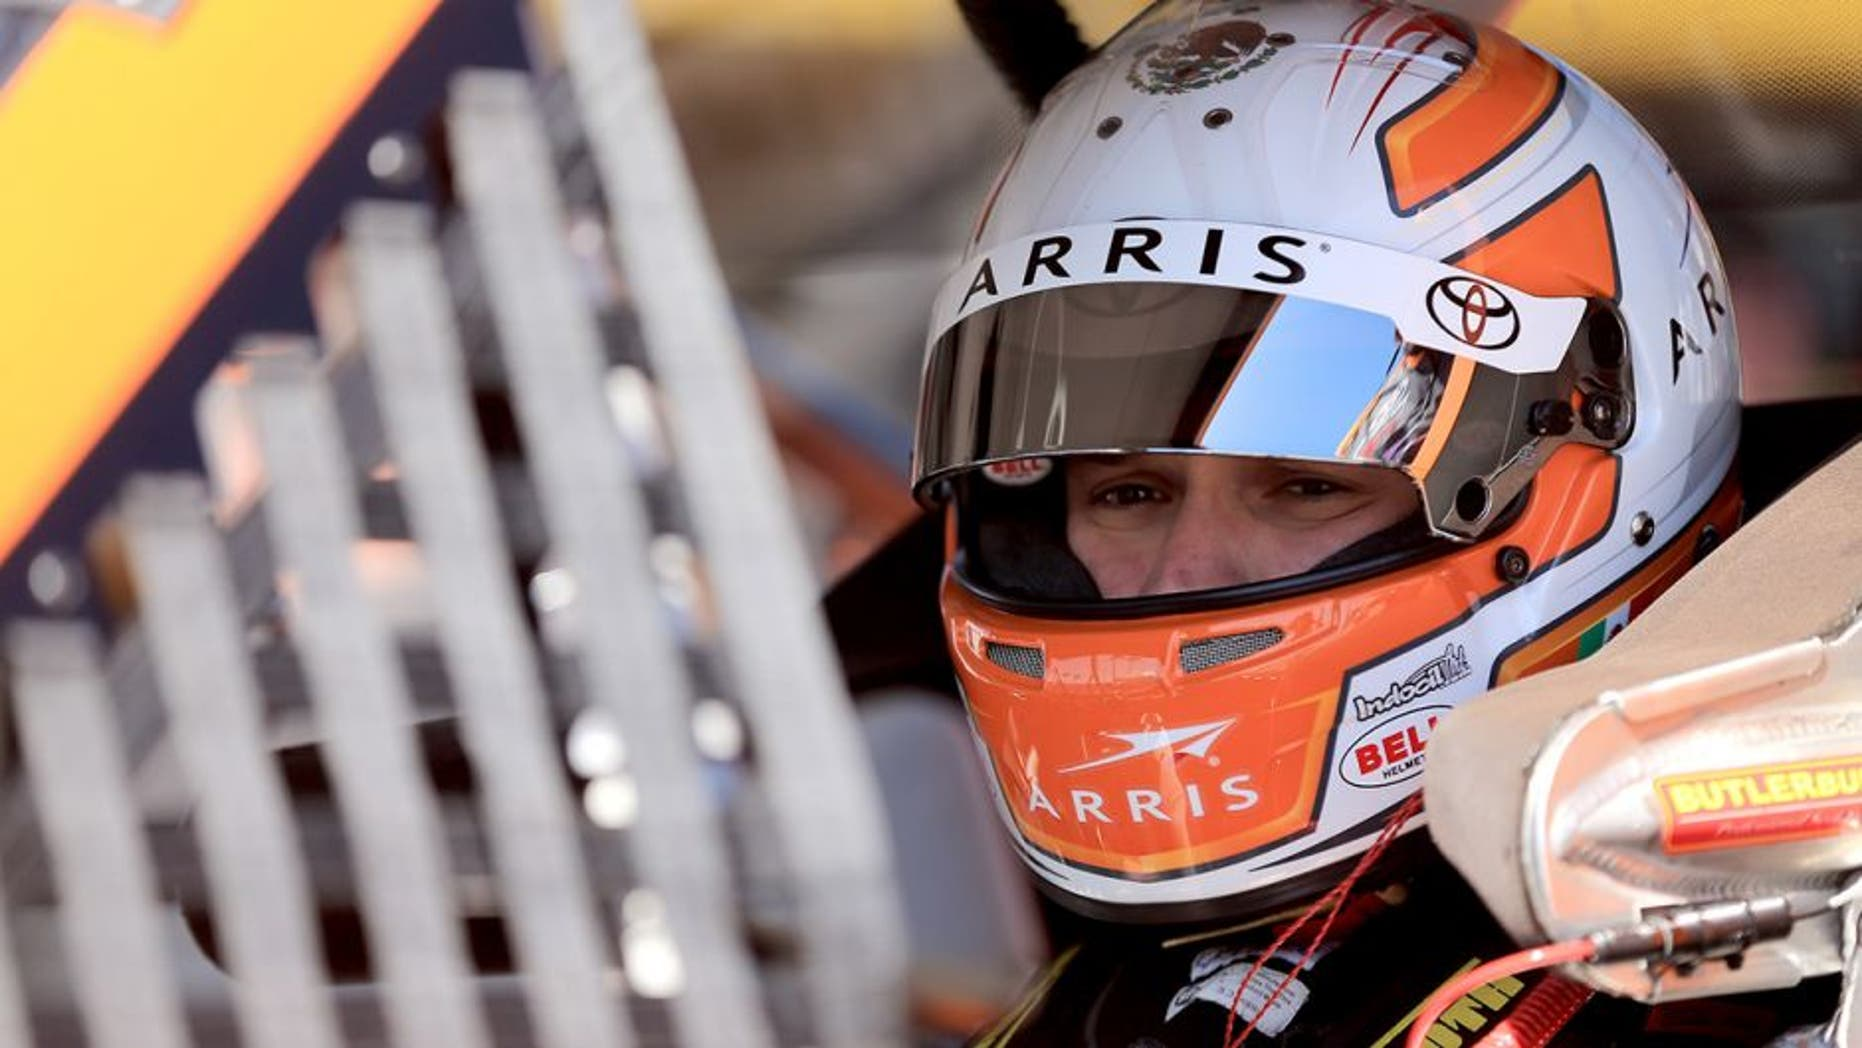 DAYTONA BEACH, FL - FEBRUARY 18: Daniel Suarez, driver of the #51 ARRIS Toyota, sits in his truck during practice for the NASCAR Camping World Truck Series NextEra Energy Resources 250 at Daytona International Speedway on February 18, 2016 in Daytona Beach, Florida. (Photo by Mike Ehrmann/Getty Images)